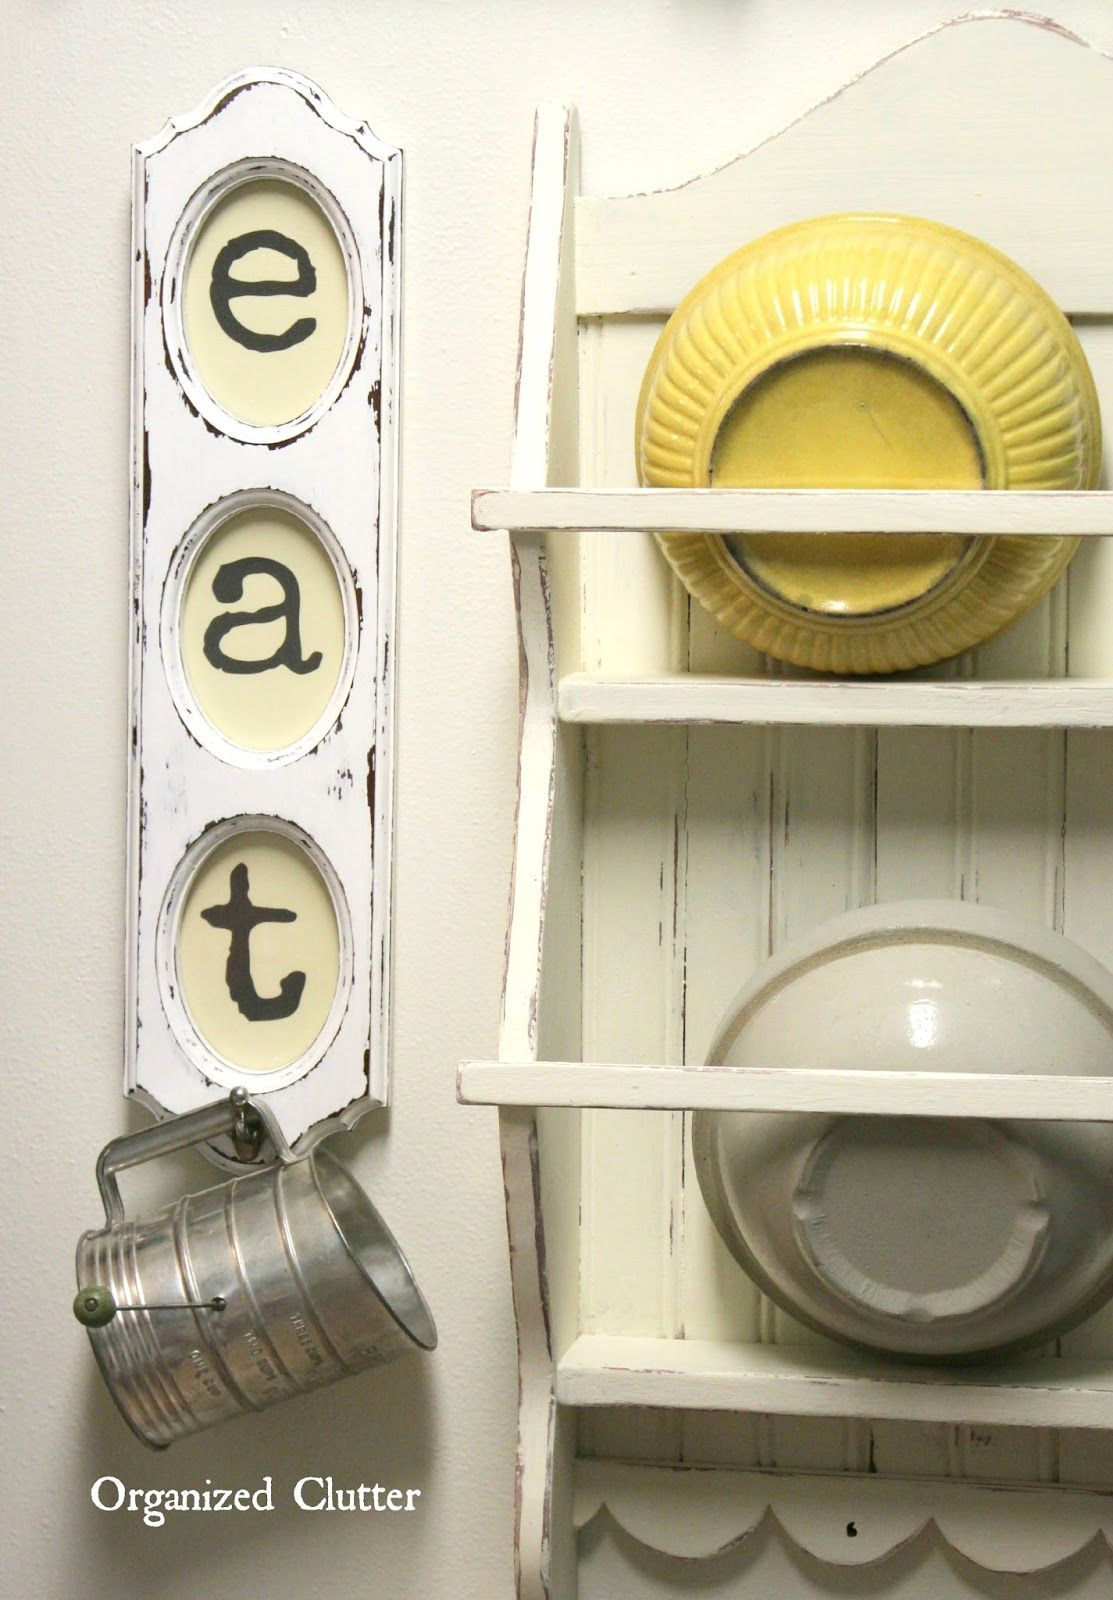 Rummage sale frame upcycled into kitchen fun anizedclutter